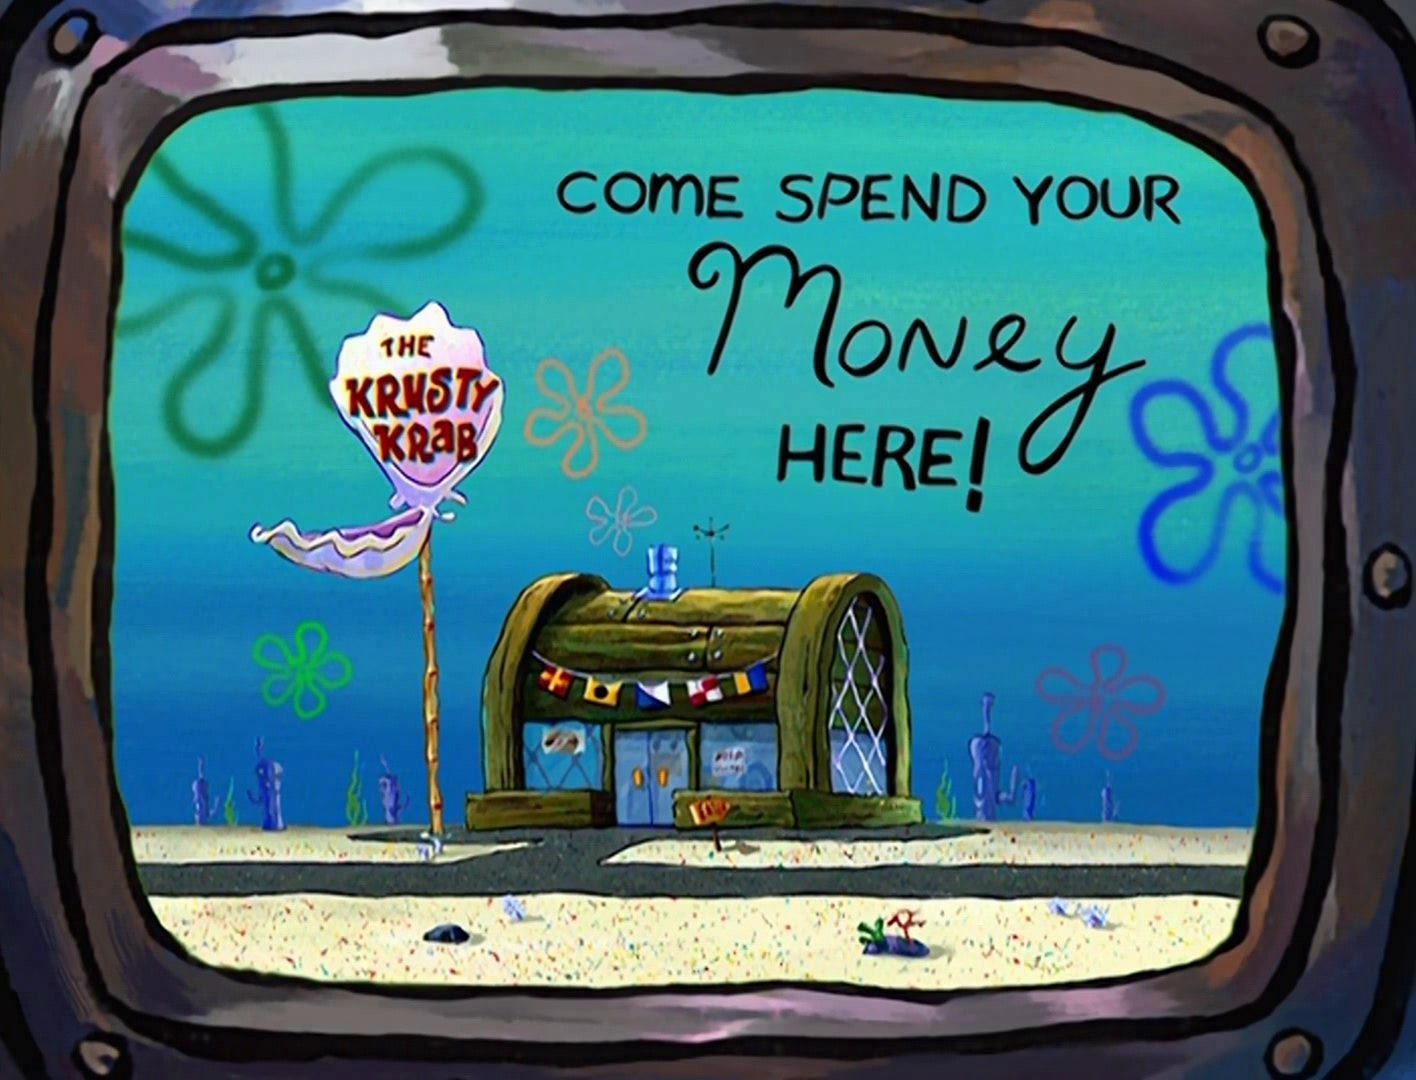 Krusty Krab commercial